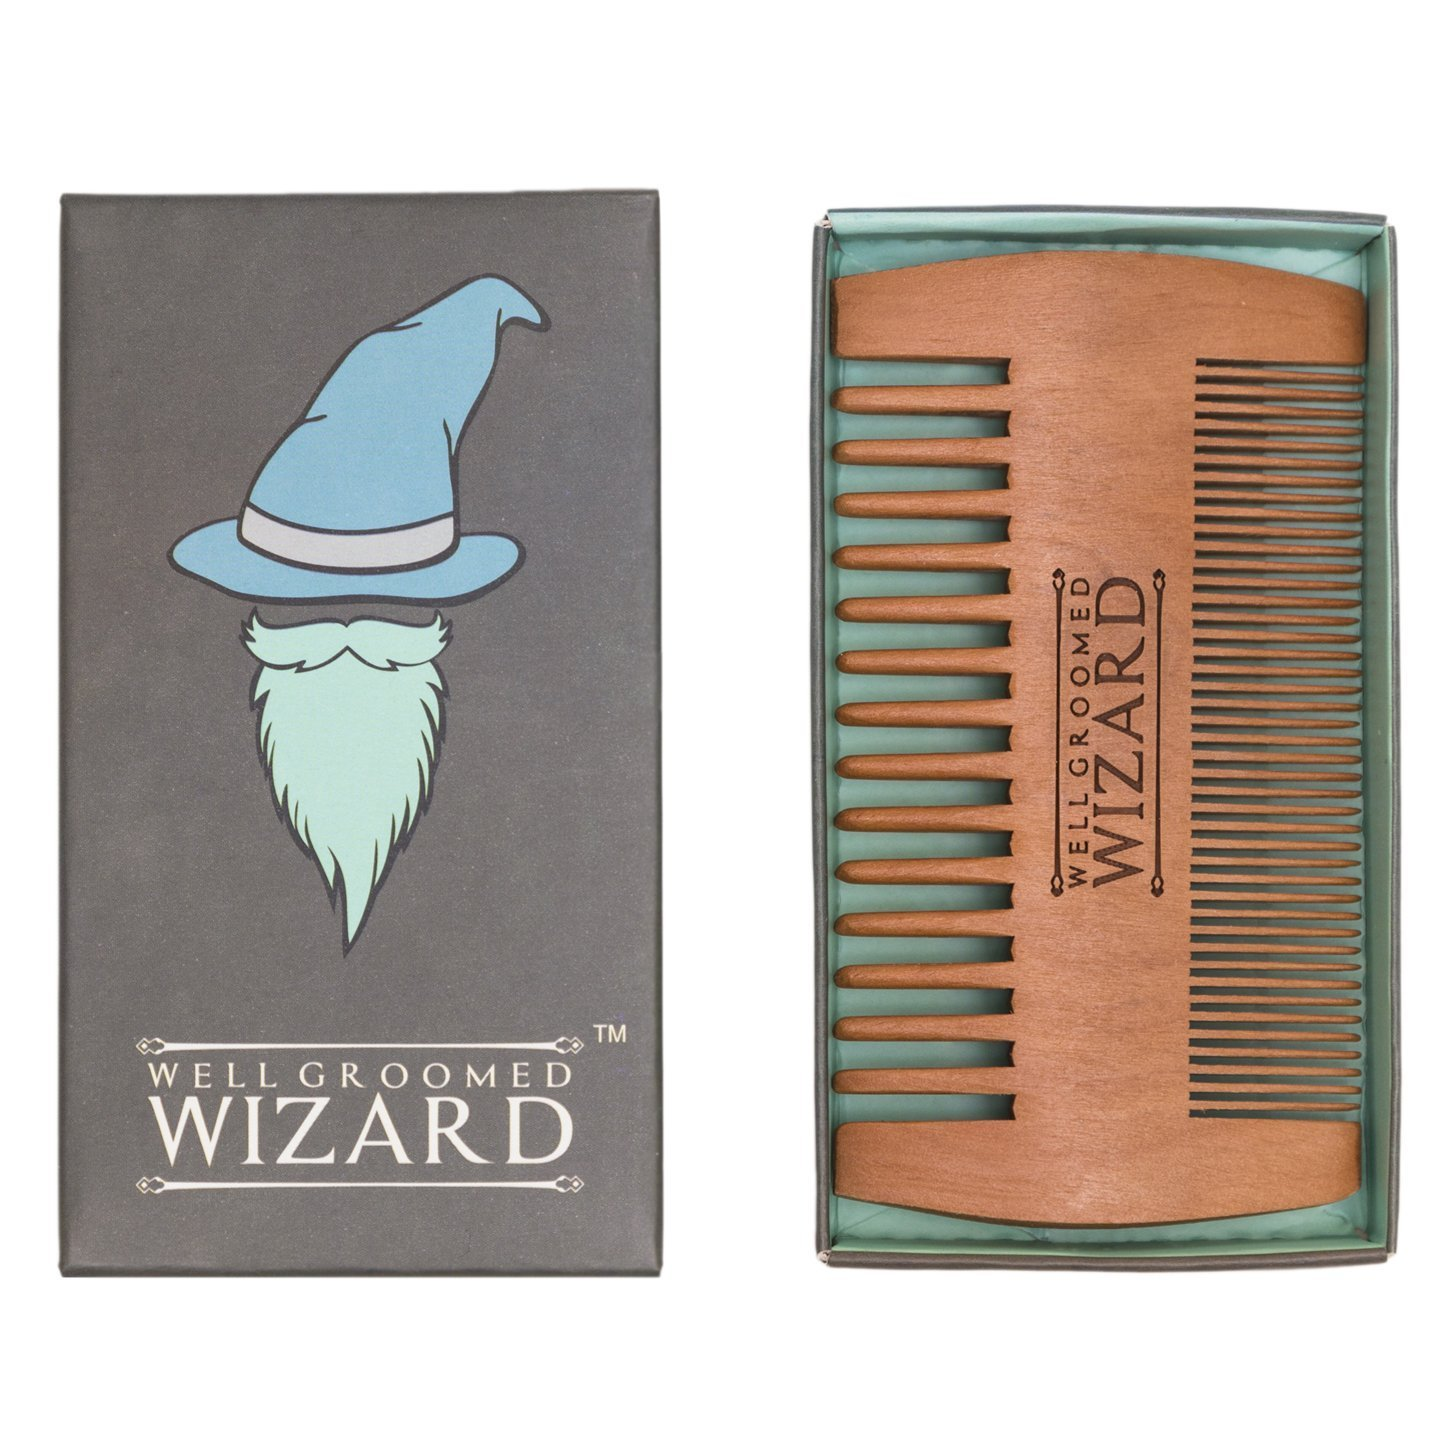 Well Groomed Wizard Wooden Beard Comb for Men, double sided Anti-static Beard Grooming Comb DSBC1